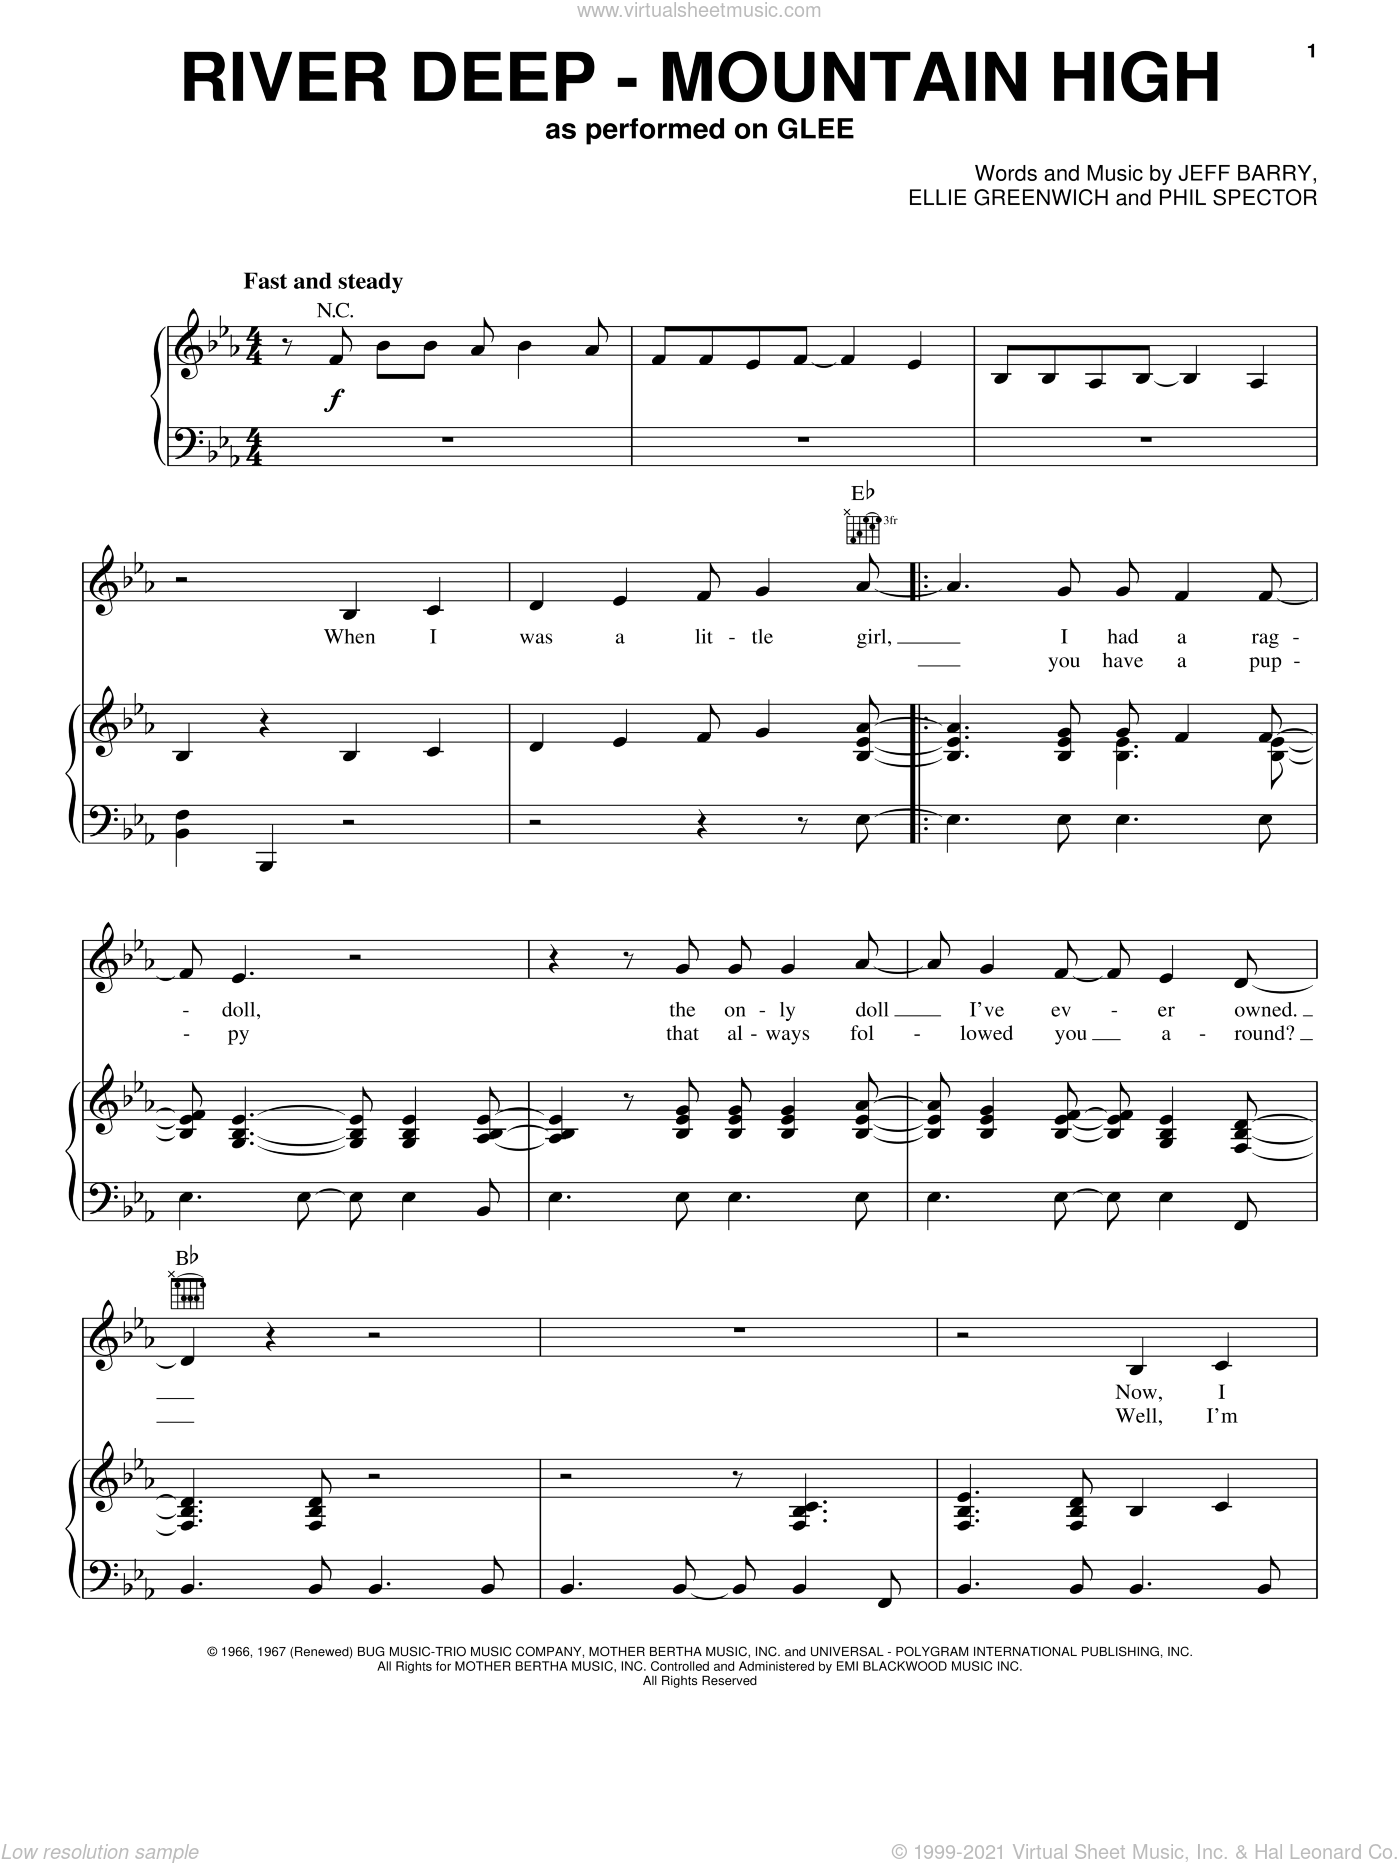 River Deep - Mountain High sheet music for voice, piano or guitar by Phil Spector, Celine Dion, Miscellaneous, Tina Turner, Ellie Greenwich, Glee Cast and Jeff Barry. Score Image Preview.